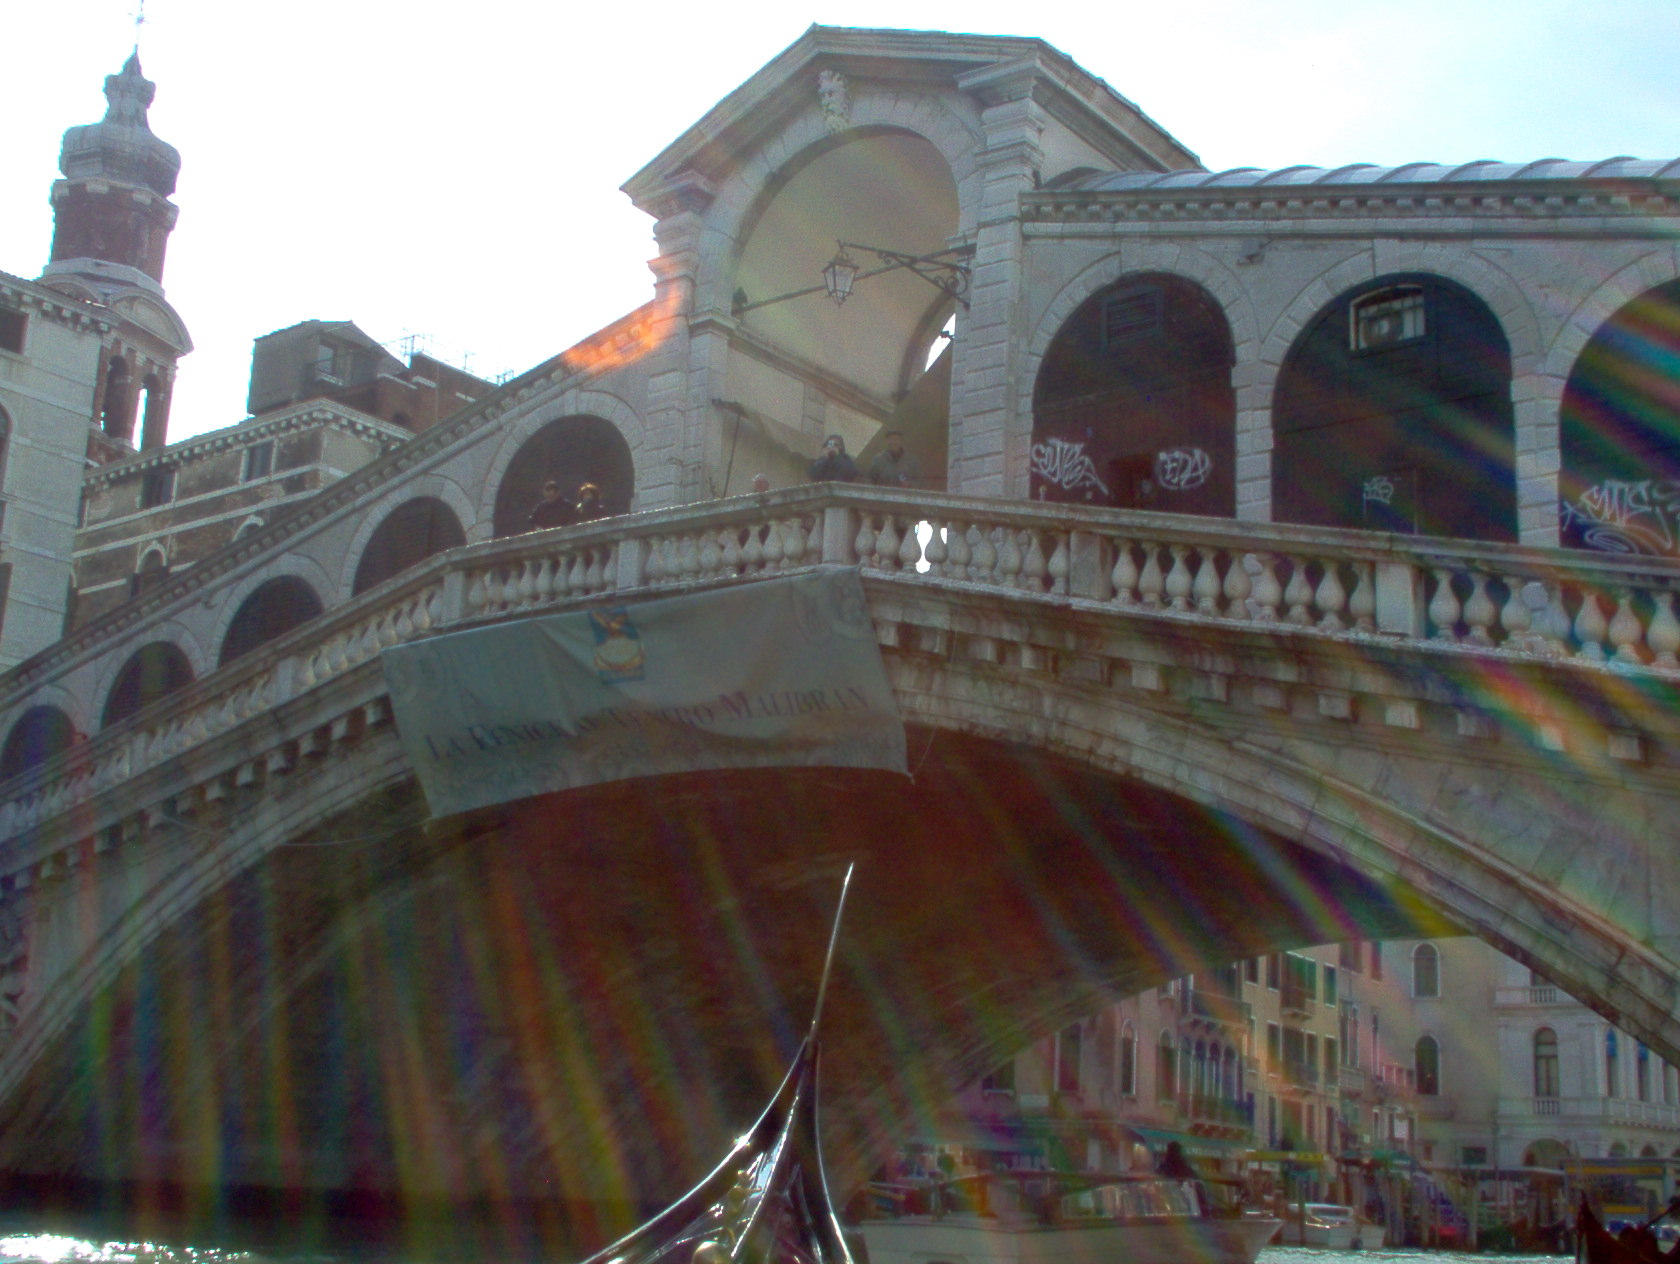 The Rialto Bridge by illusions-of-beauty